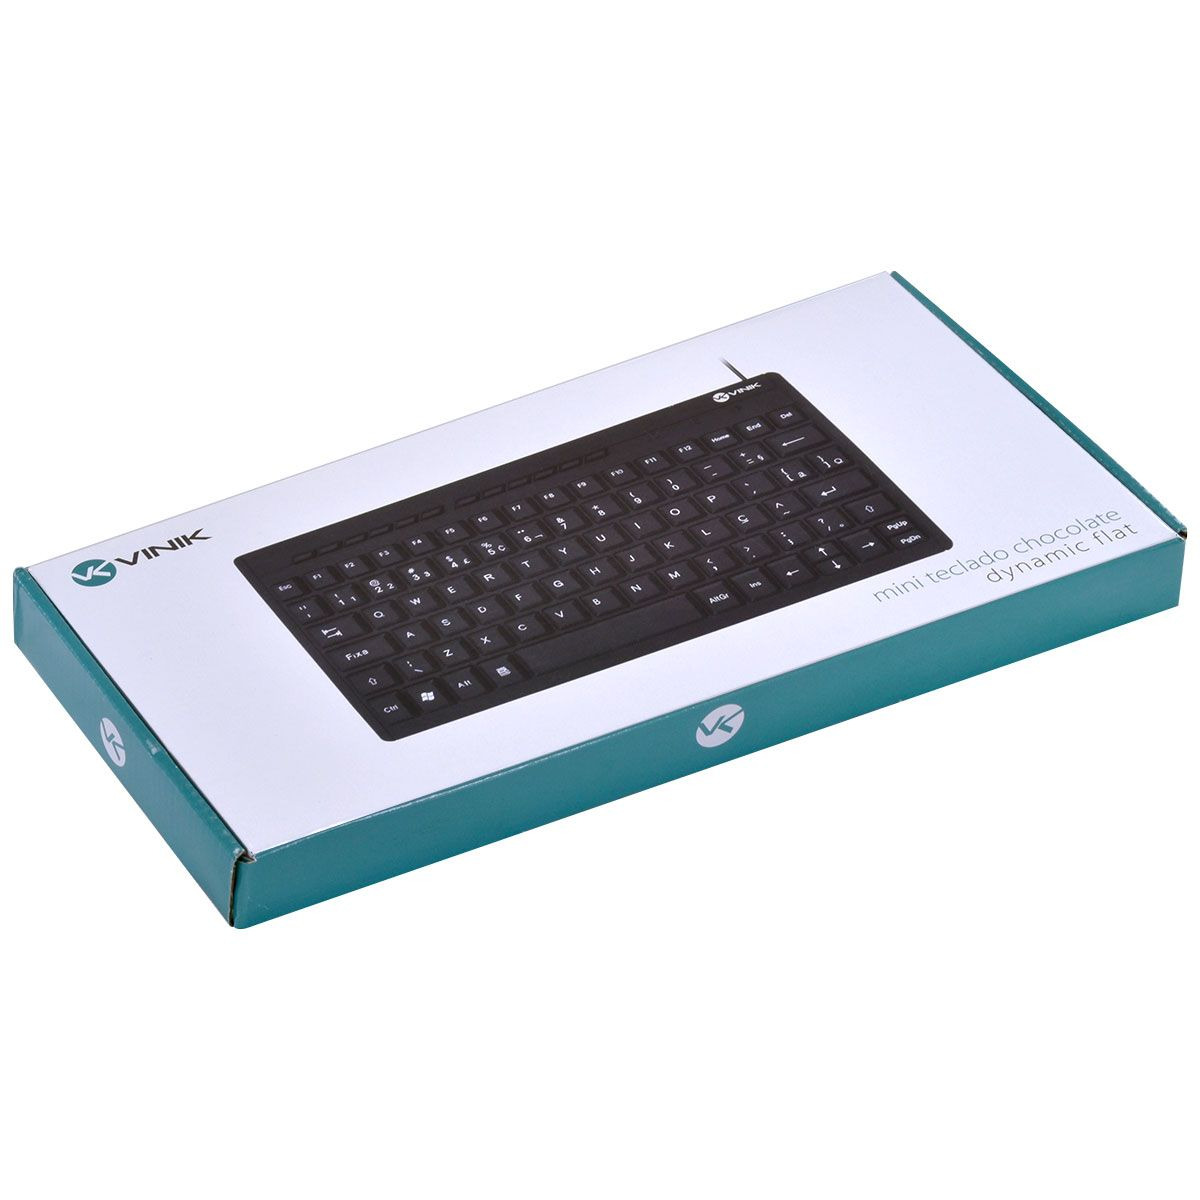 MINI TECLADO USB CHOCOLATE MULTIMIDIA DYNAMIC FLAT ABNT2 1.8M PRETO - DT110